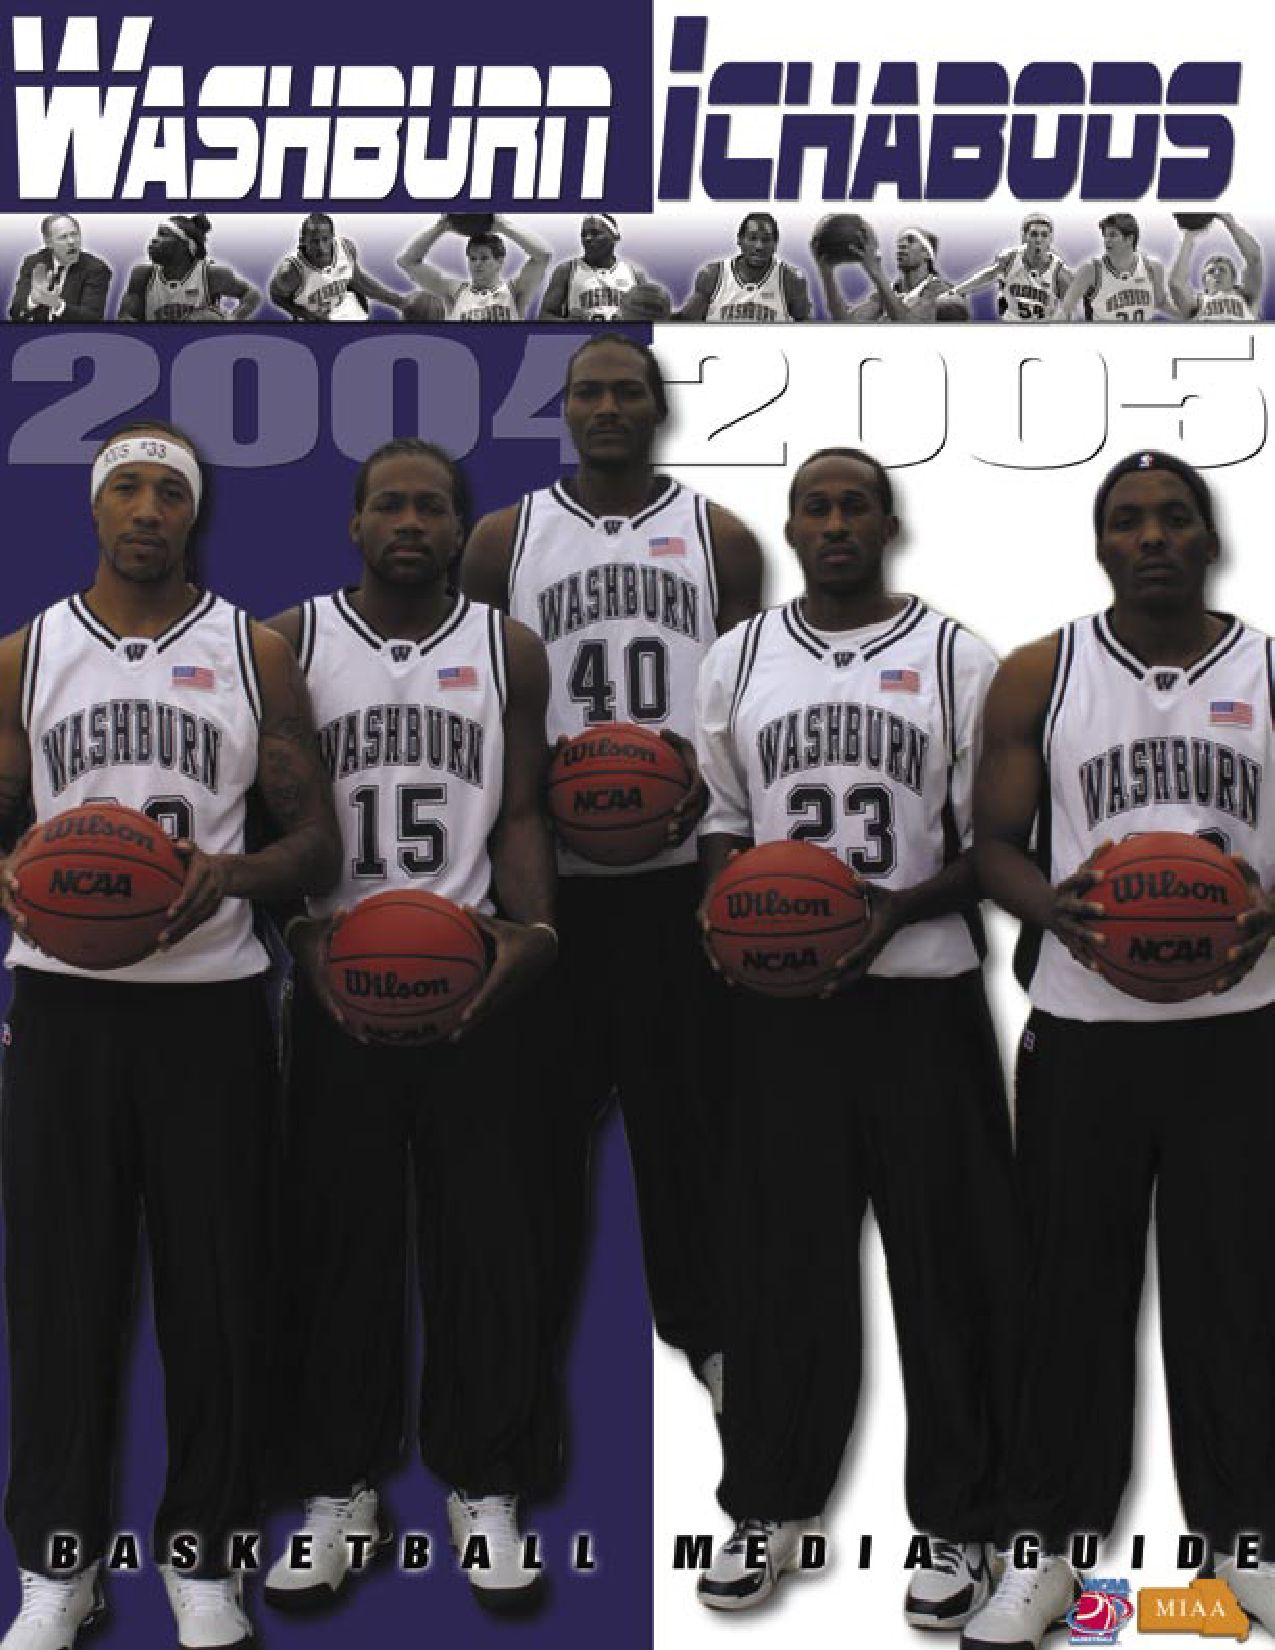 ced0712cdbfd30 http   www.wusports.com custompages mbball Media%20Guide 2004-05 04-completeguide  by Washburn Athletics - issuu